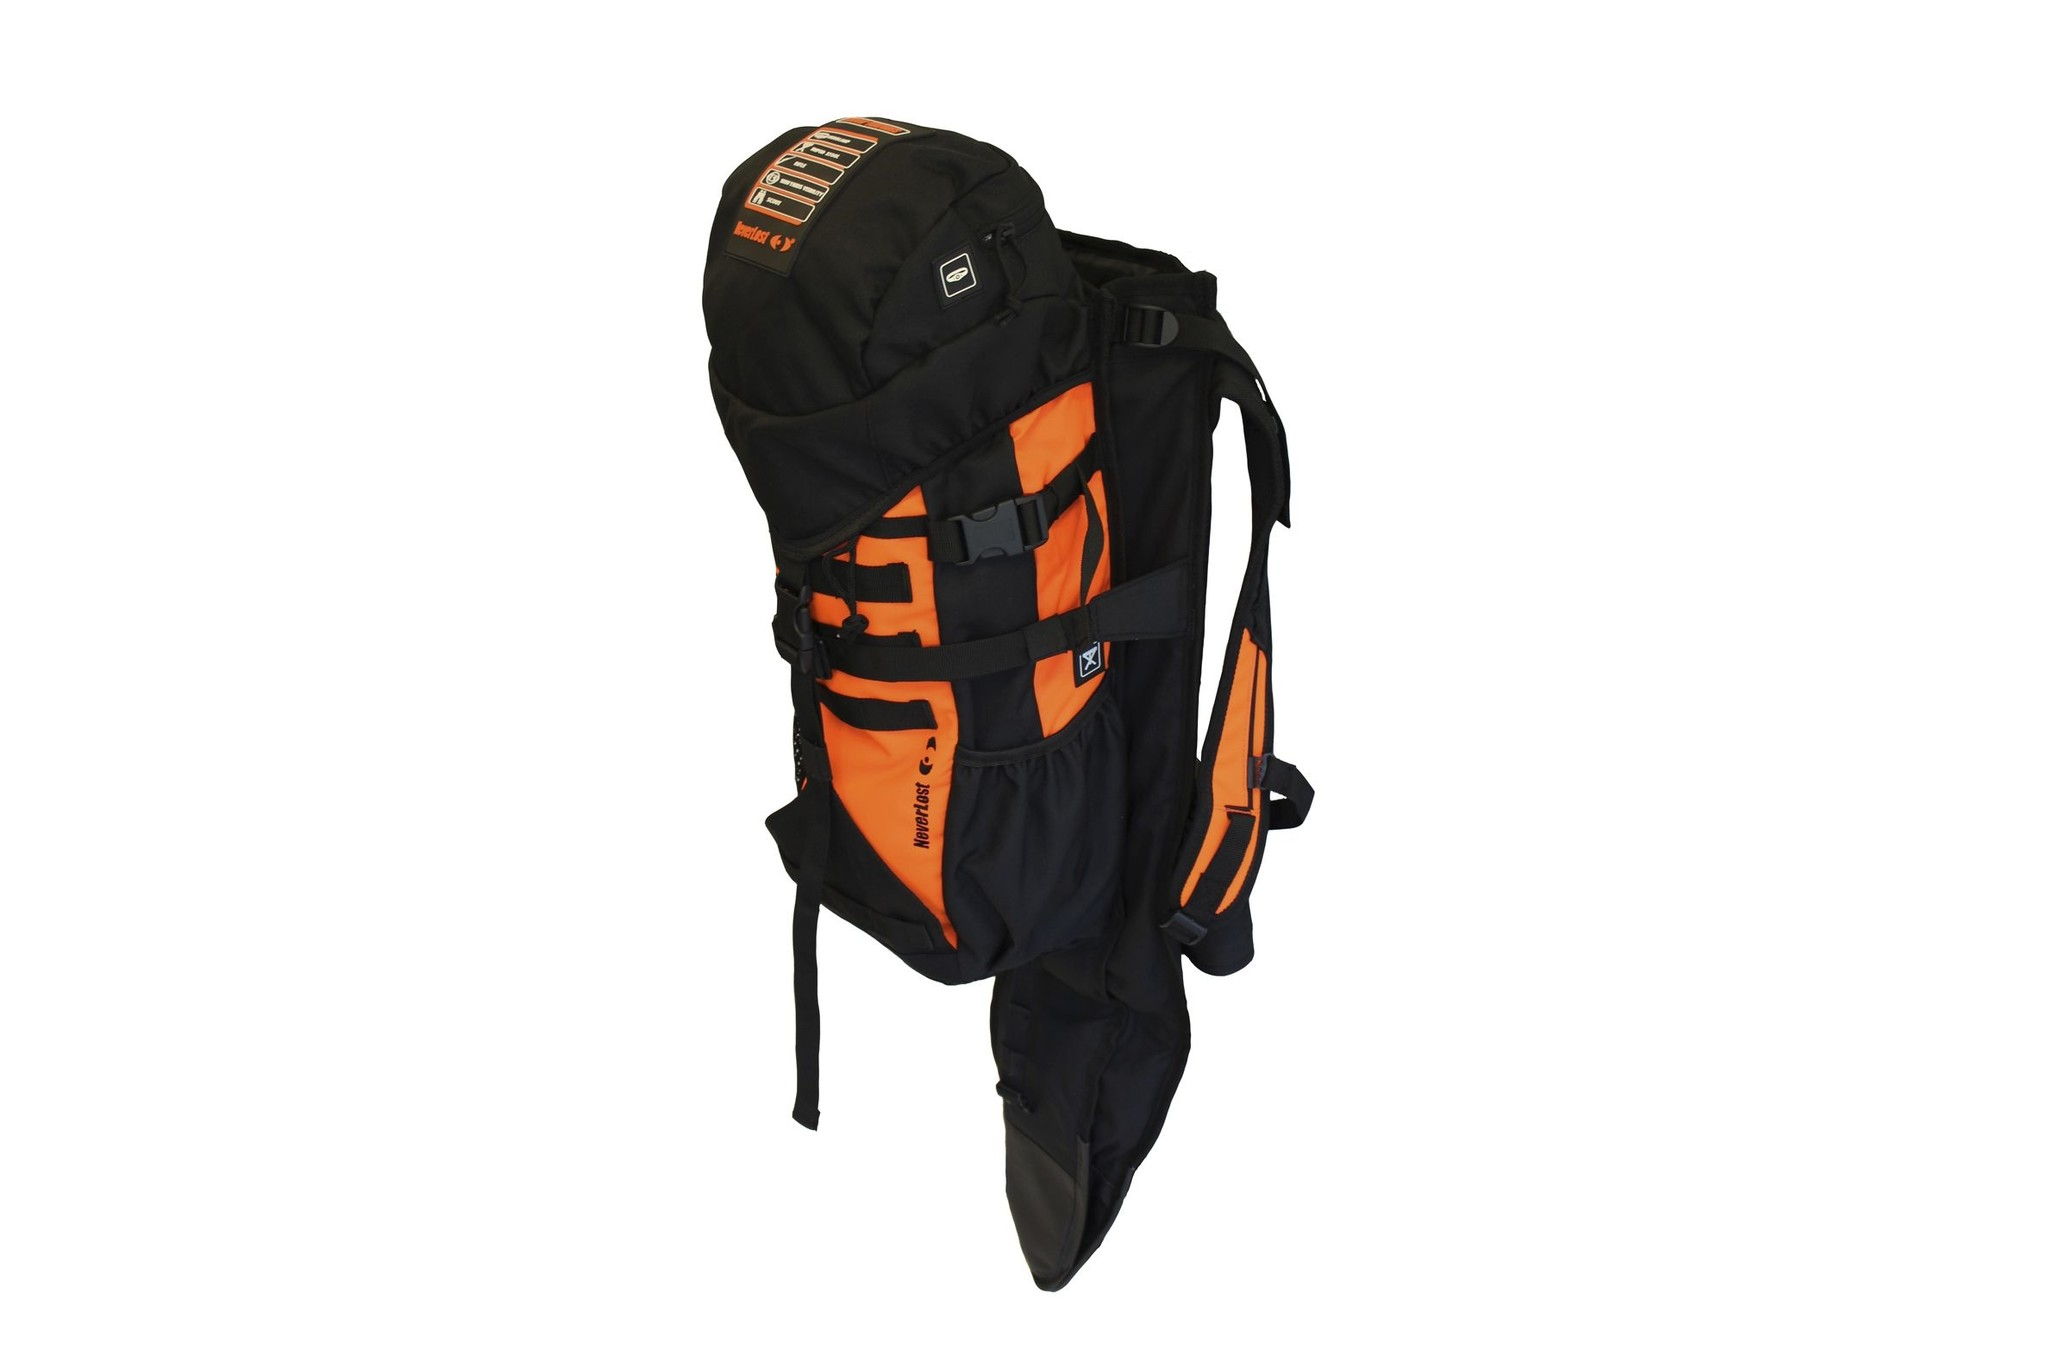 Neverlost Scout Hunting Backpack 28 liters - BK